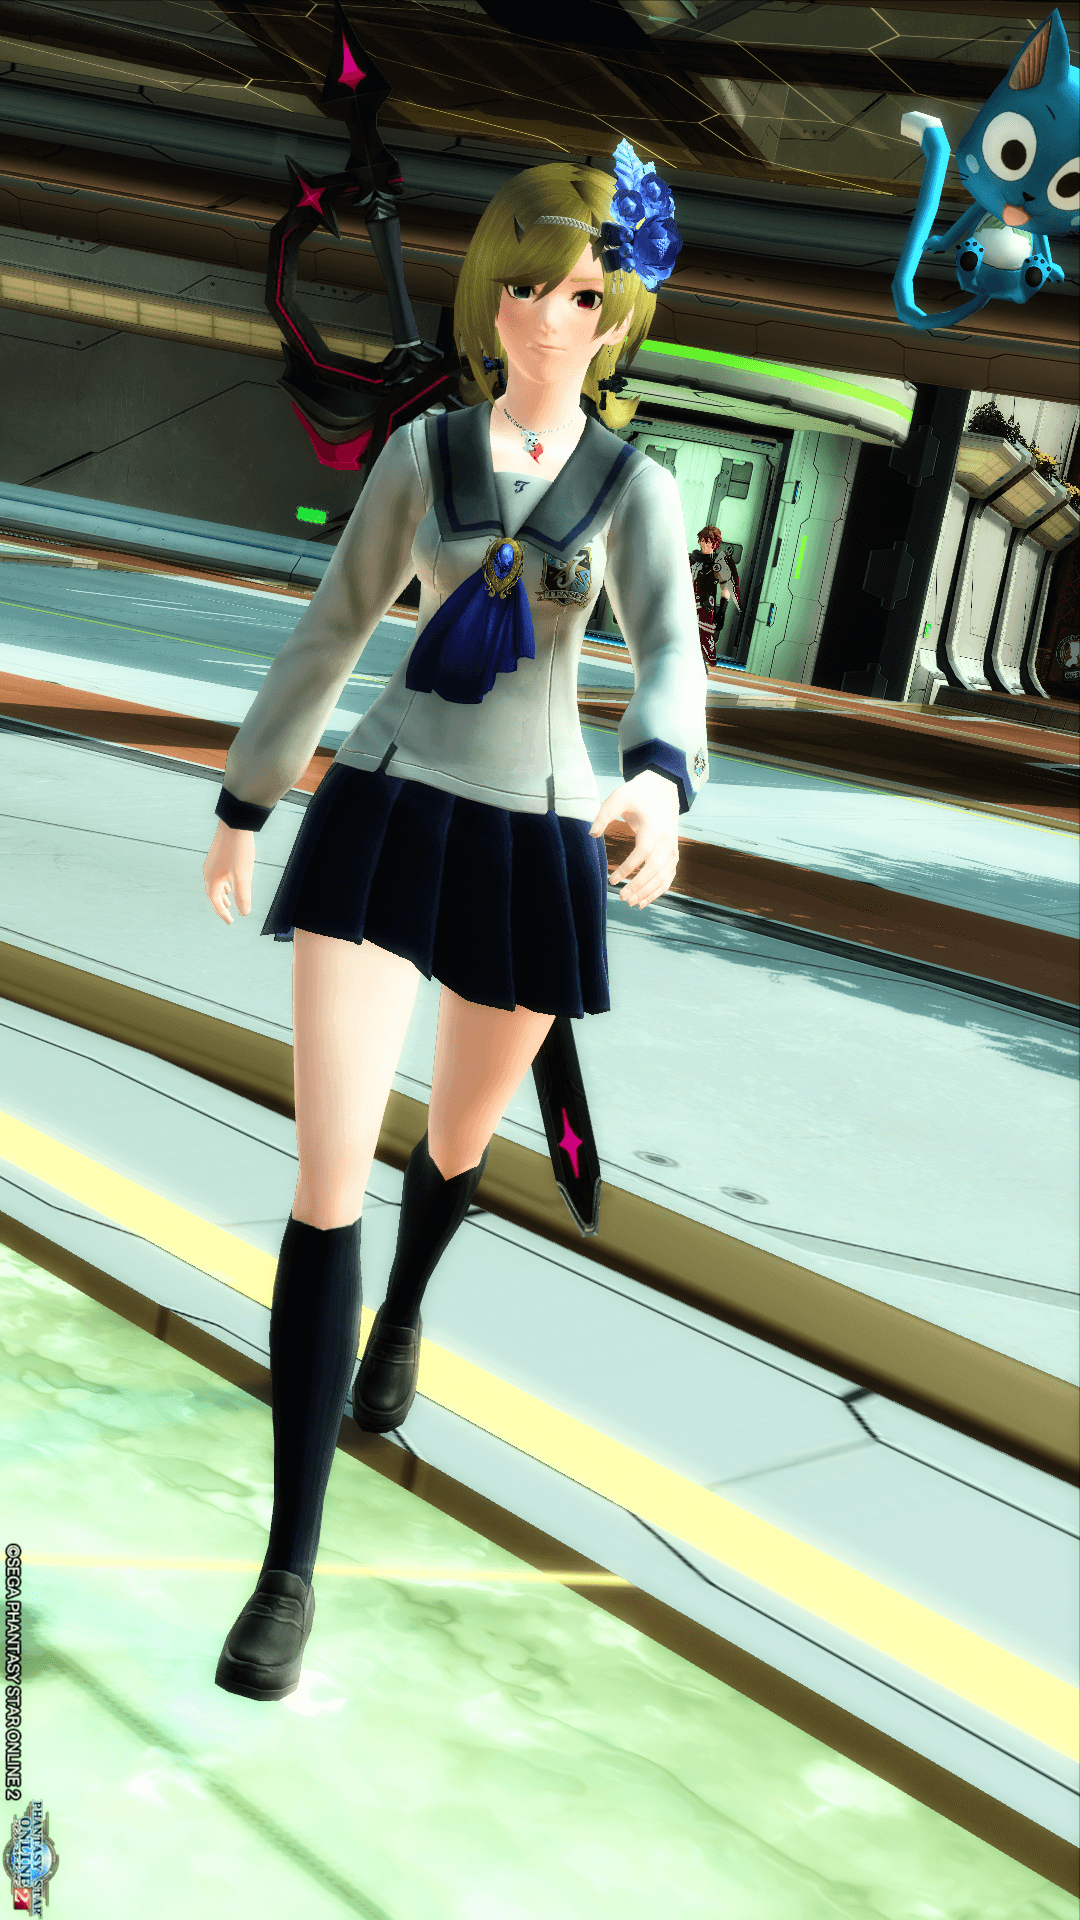 pso20160323_211248_006.png